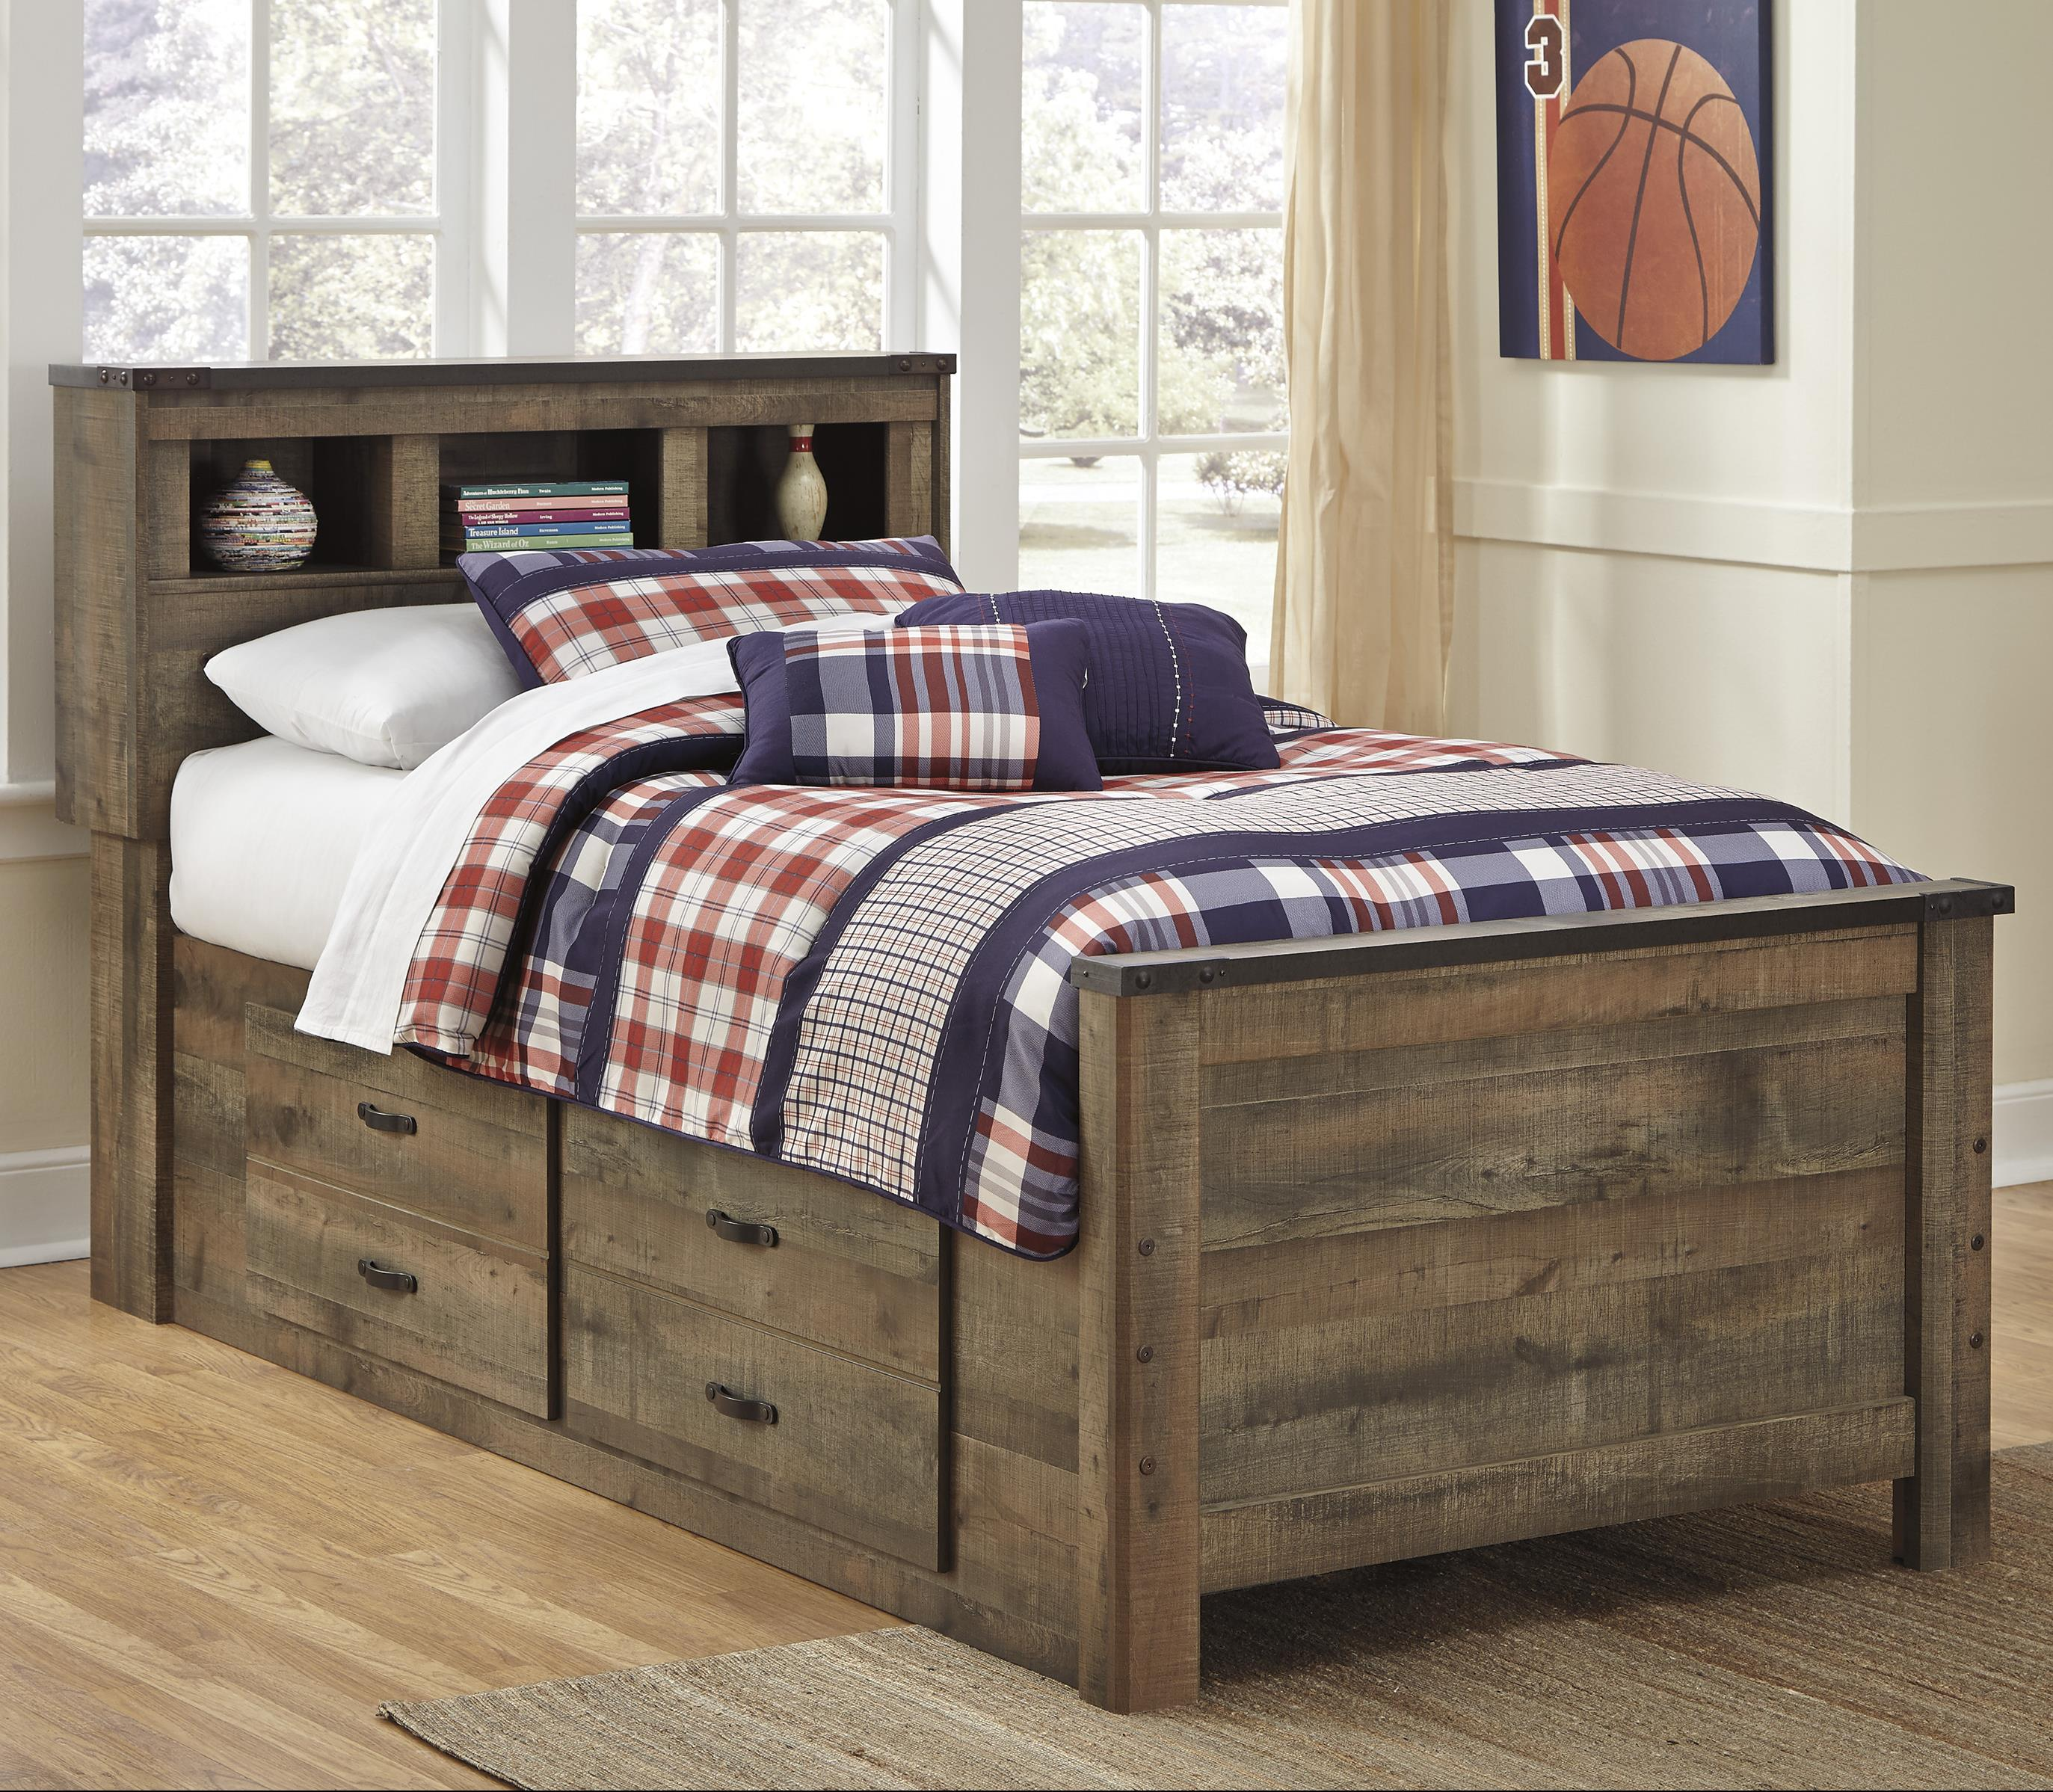 3 Twin Beds In The Space Of 1 Ashley Signature Design Trinell Rustic Look Twin Bookcase